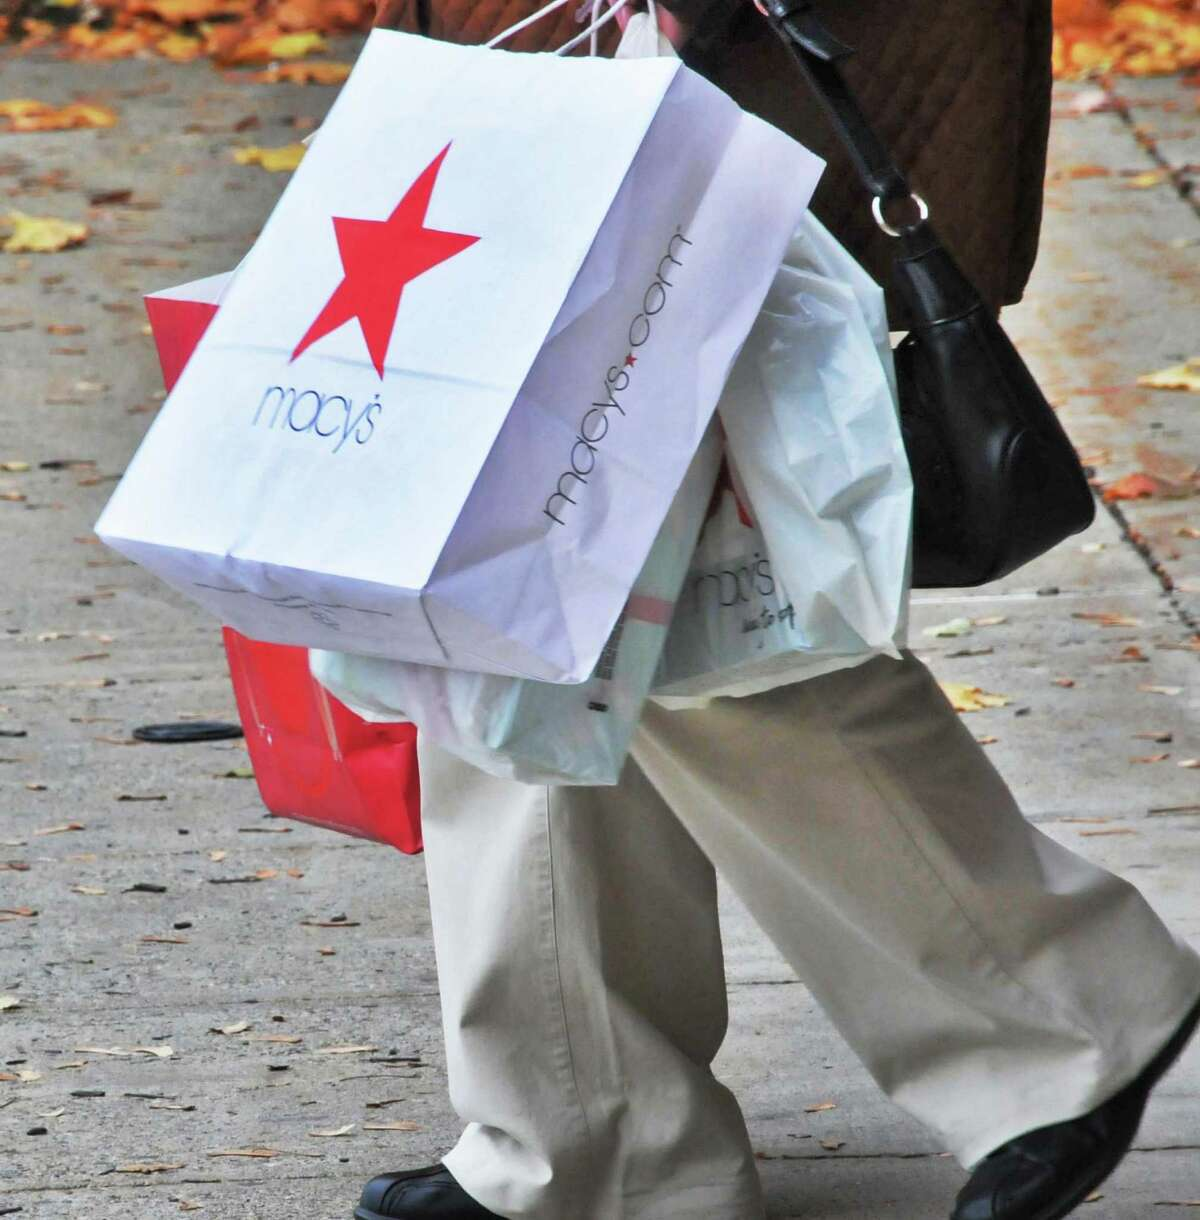 Macy's announced on Thursday that it will shutter about 100 full-line locations, but Crossgates Mall says it won't be their store. Click through the slideshow to see other stores that have opened or closed recently in the Capital Region.